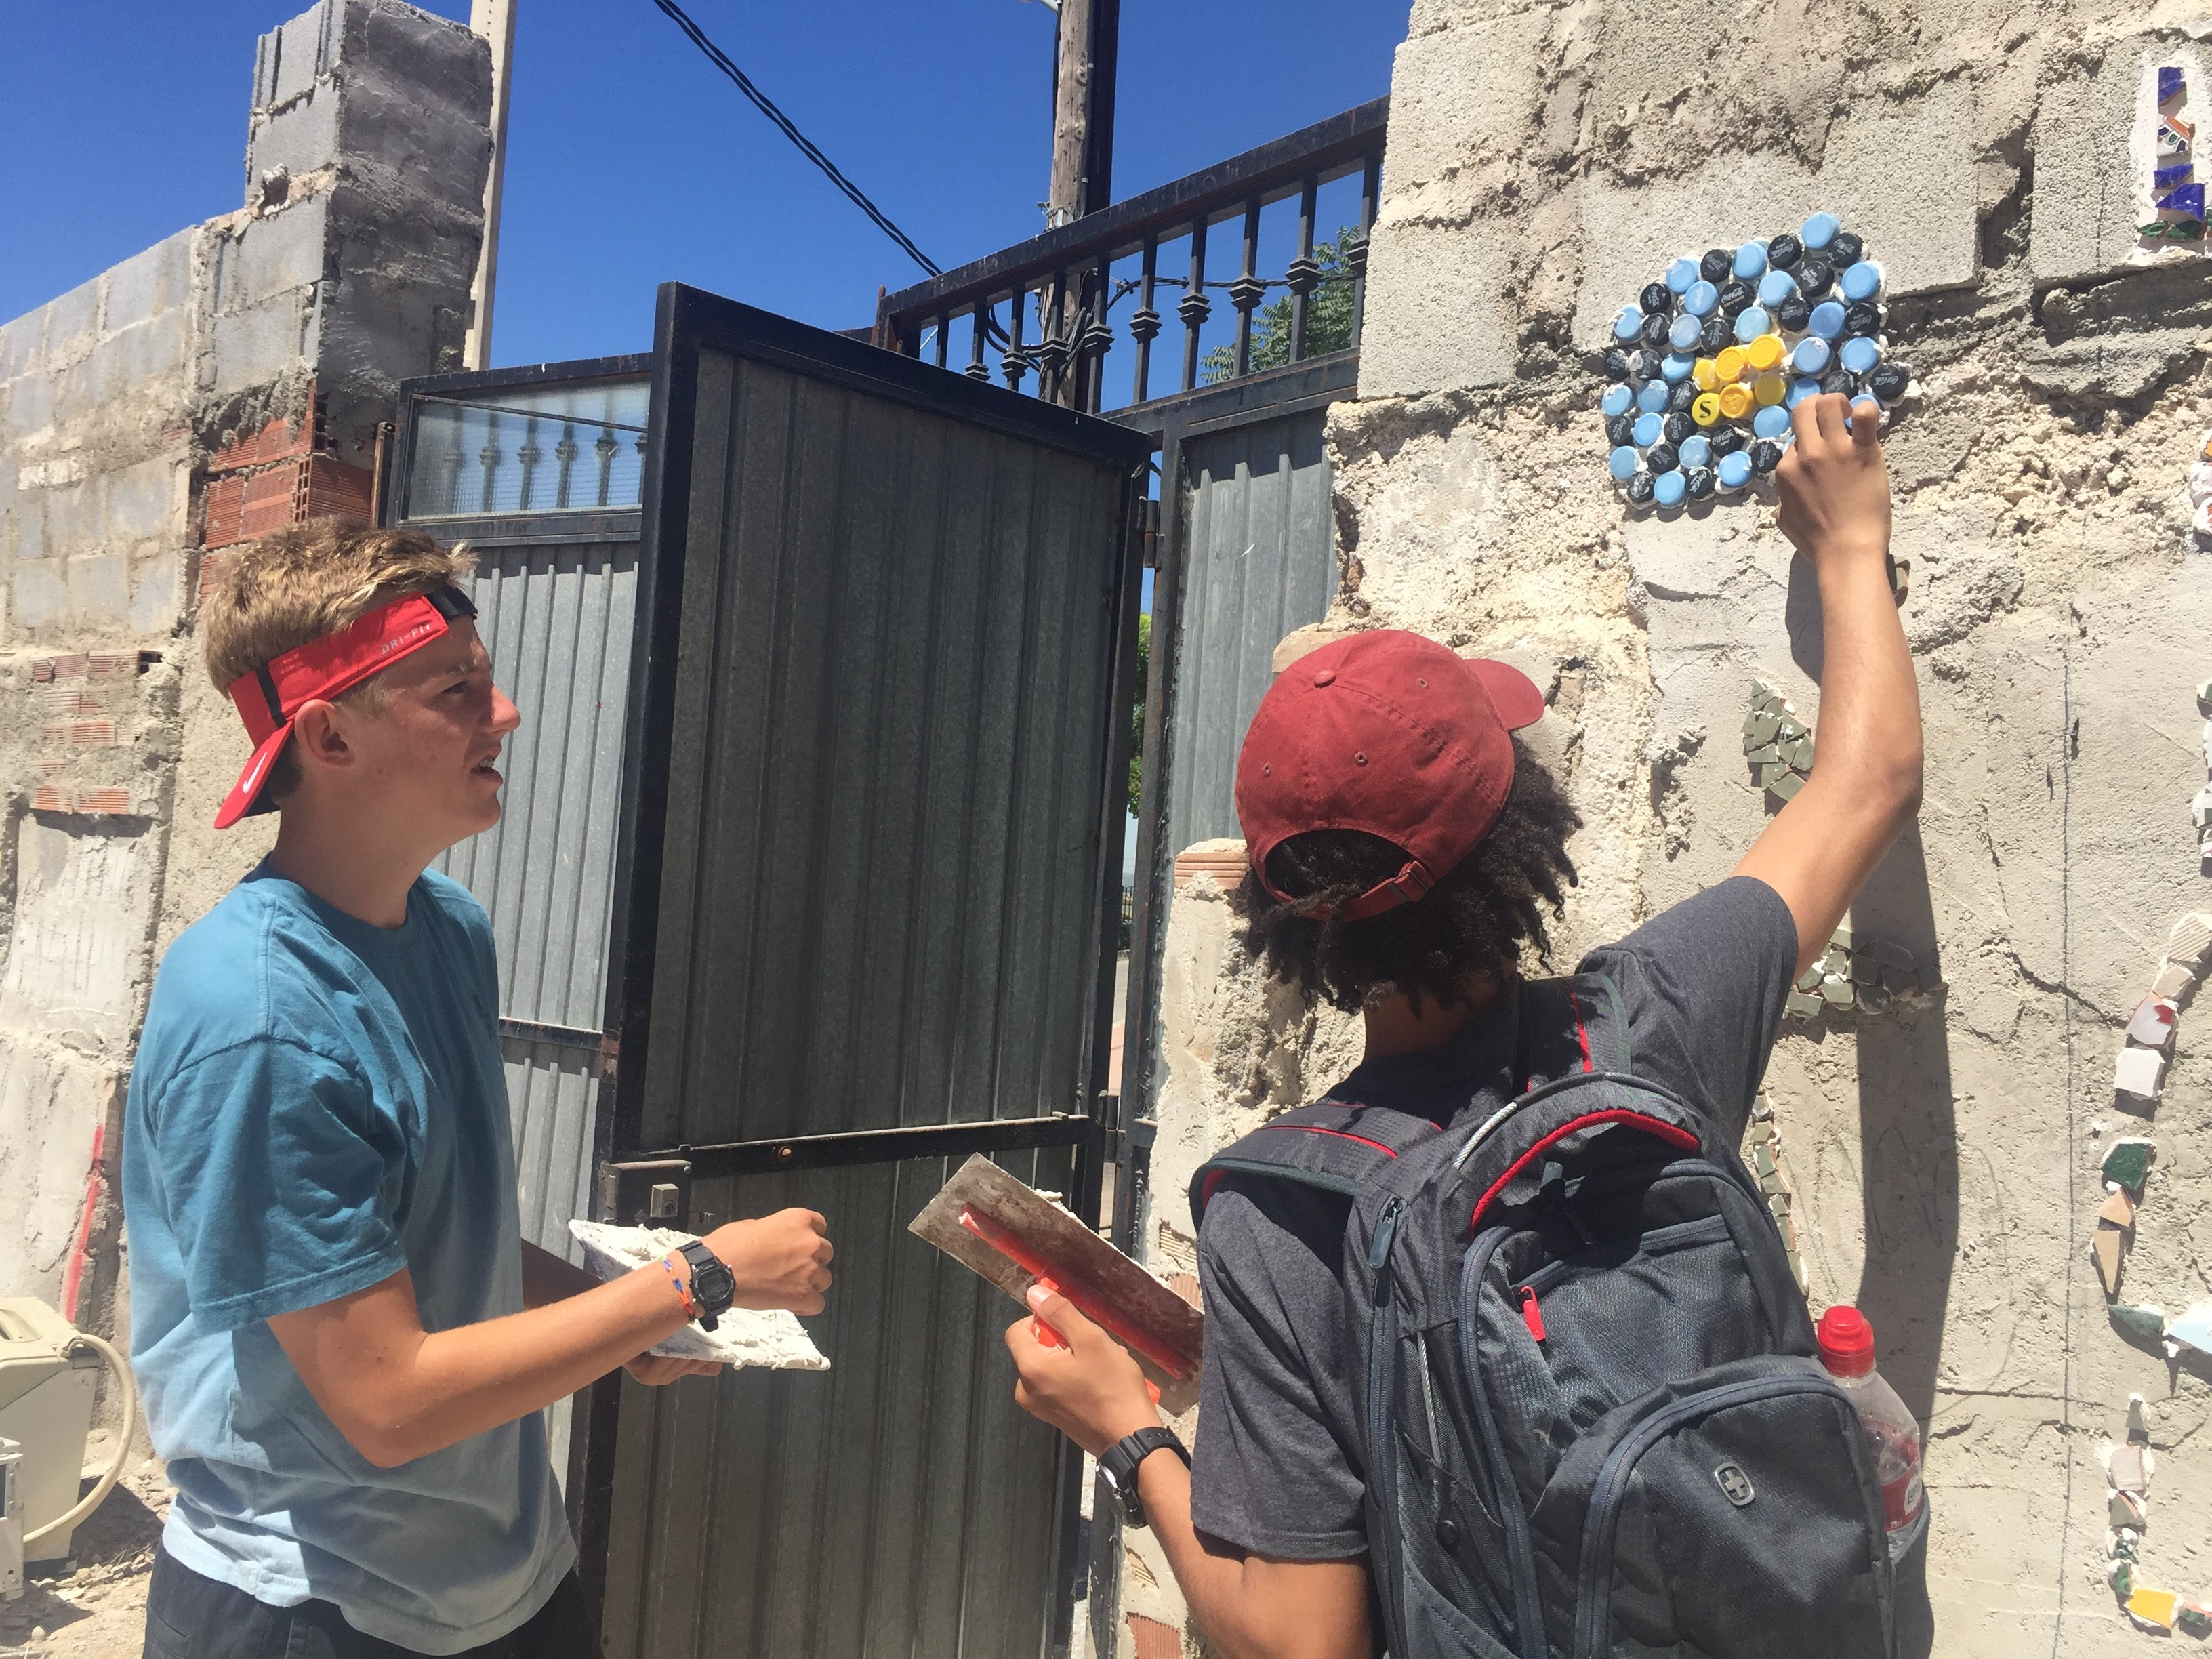 Summer Program - Preserving the Environment | Global Works - Spain: Service & Sights